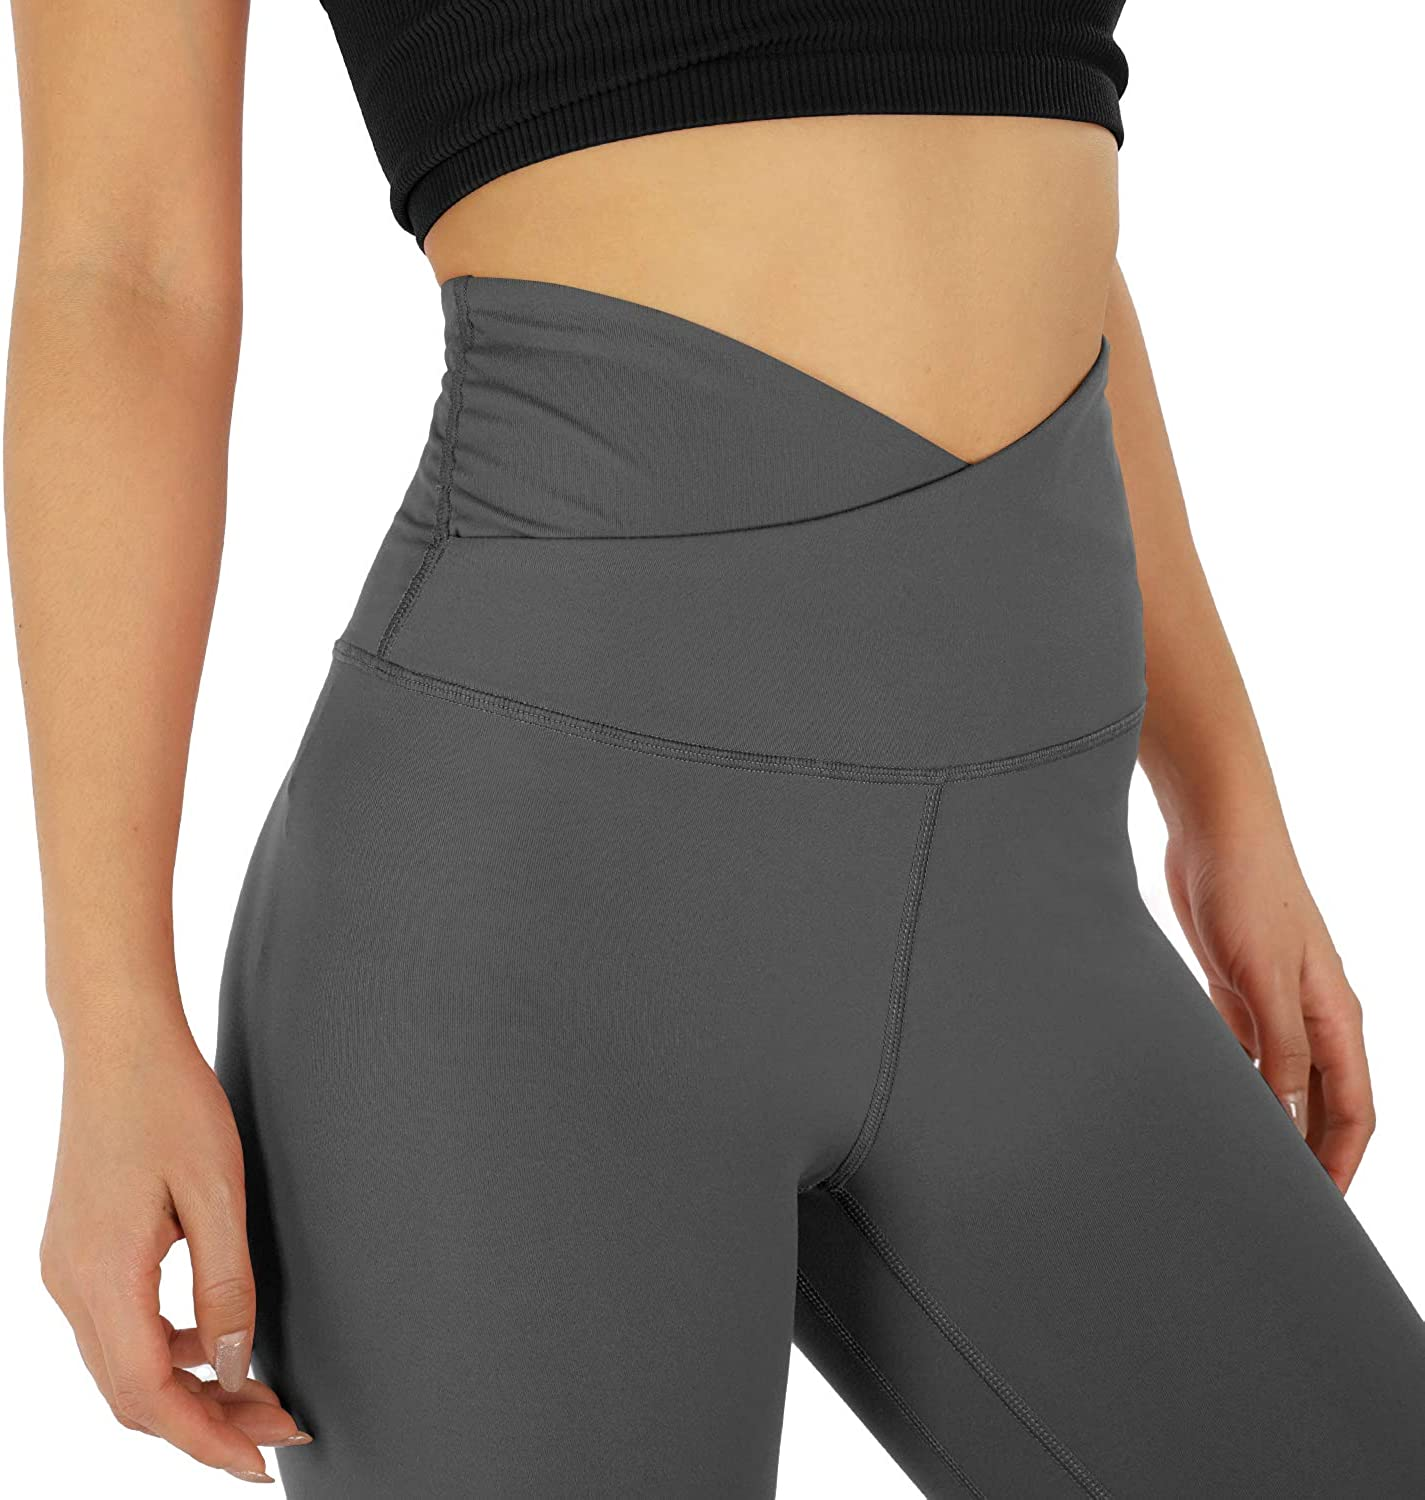 Inseam 25 ODODOS Womens Cross Waist 7//8 Yoga Leggings with Inner Pocket Workout Running Tights Yoga Pants